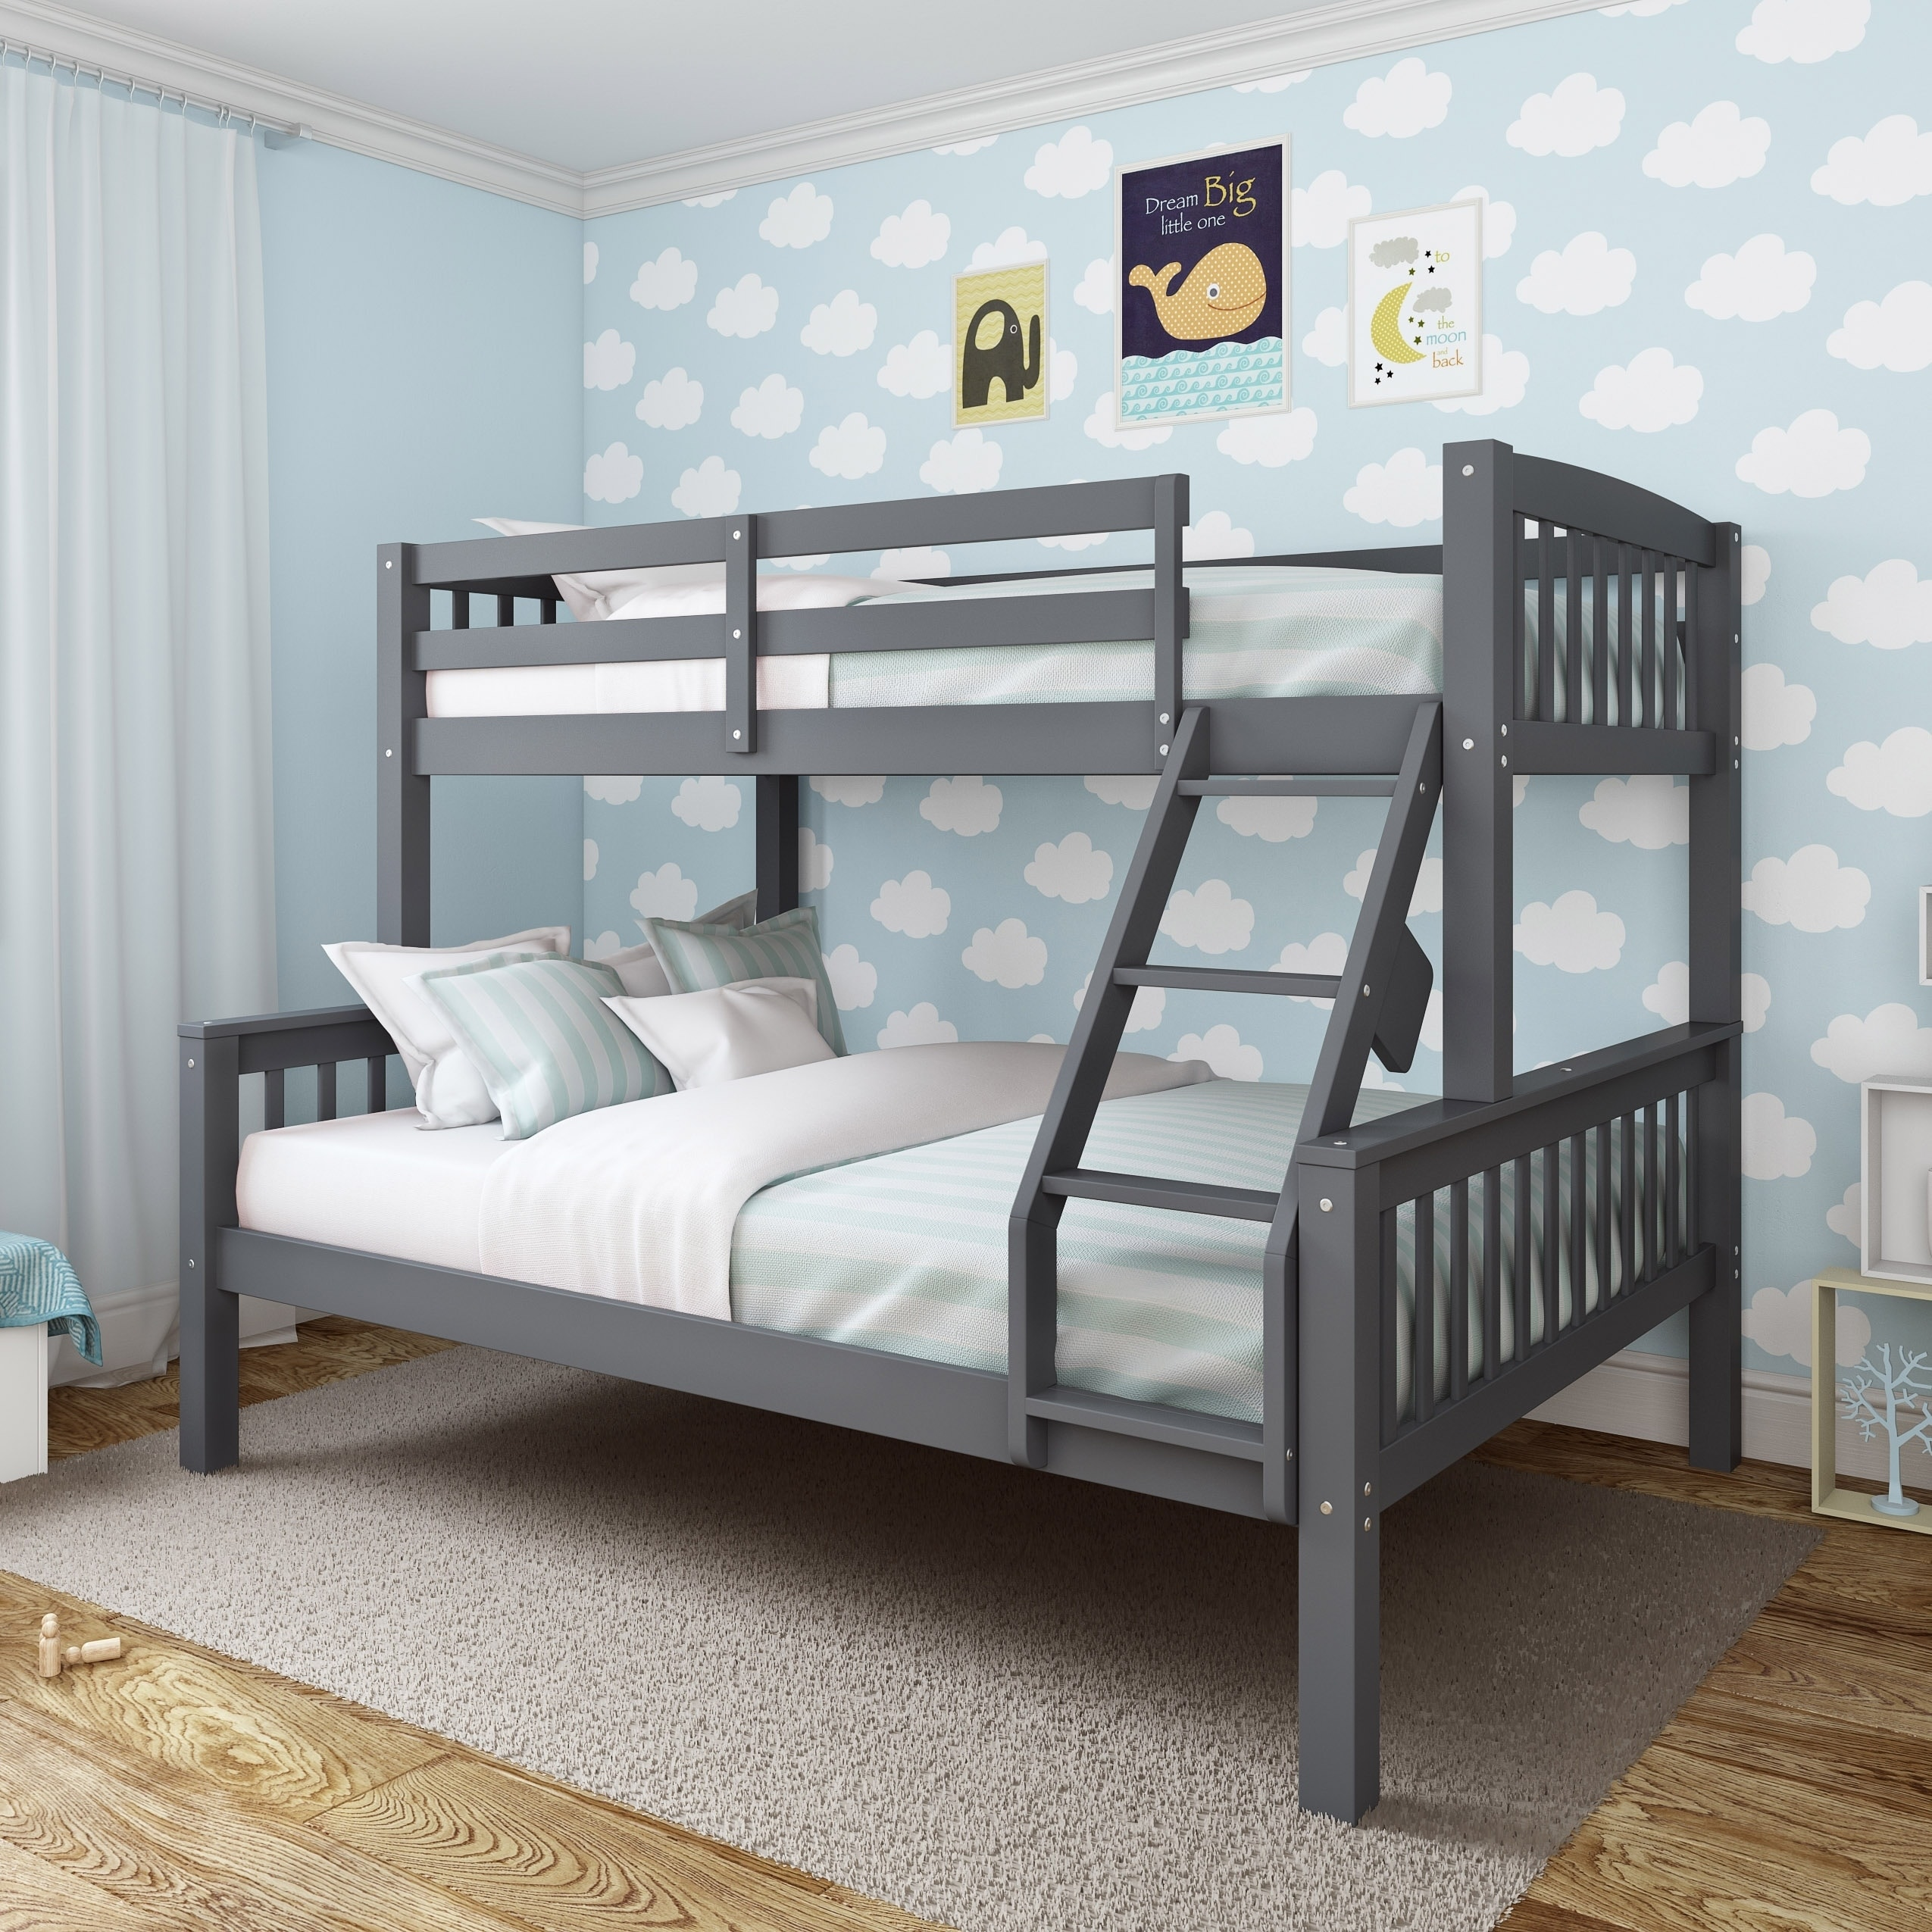 Picture of: Taylor Olive Christian Twin Single Over Full Double Bunk Bed Overstock 19876150